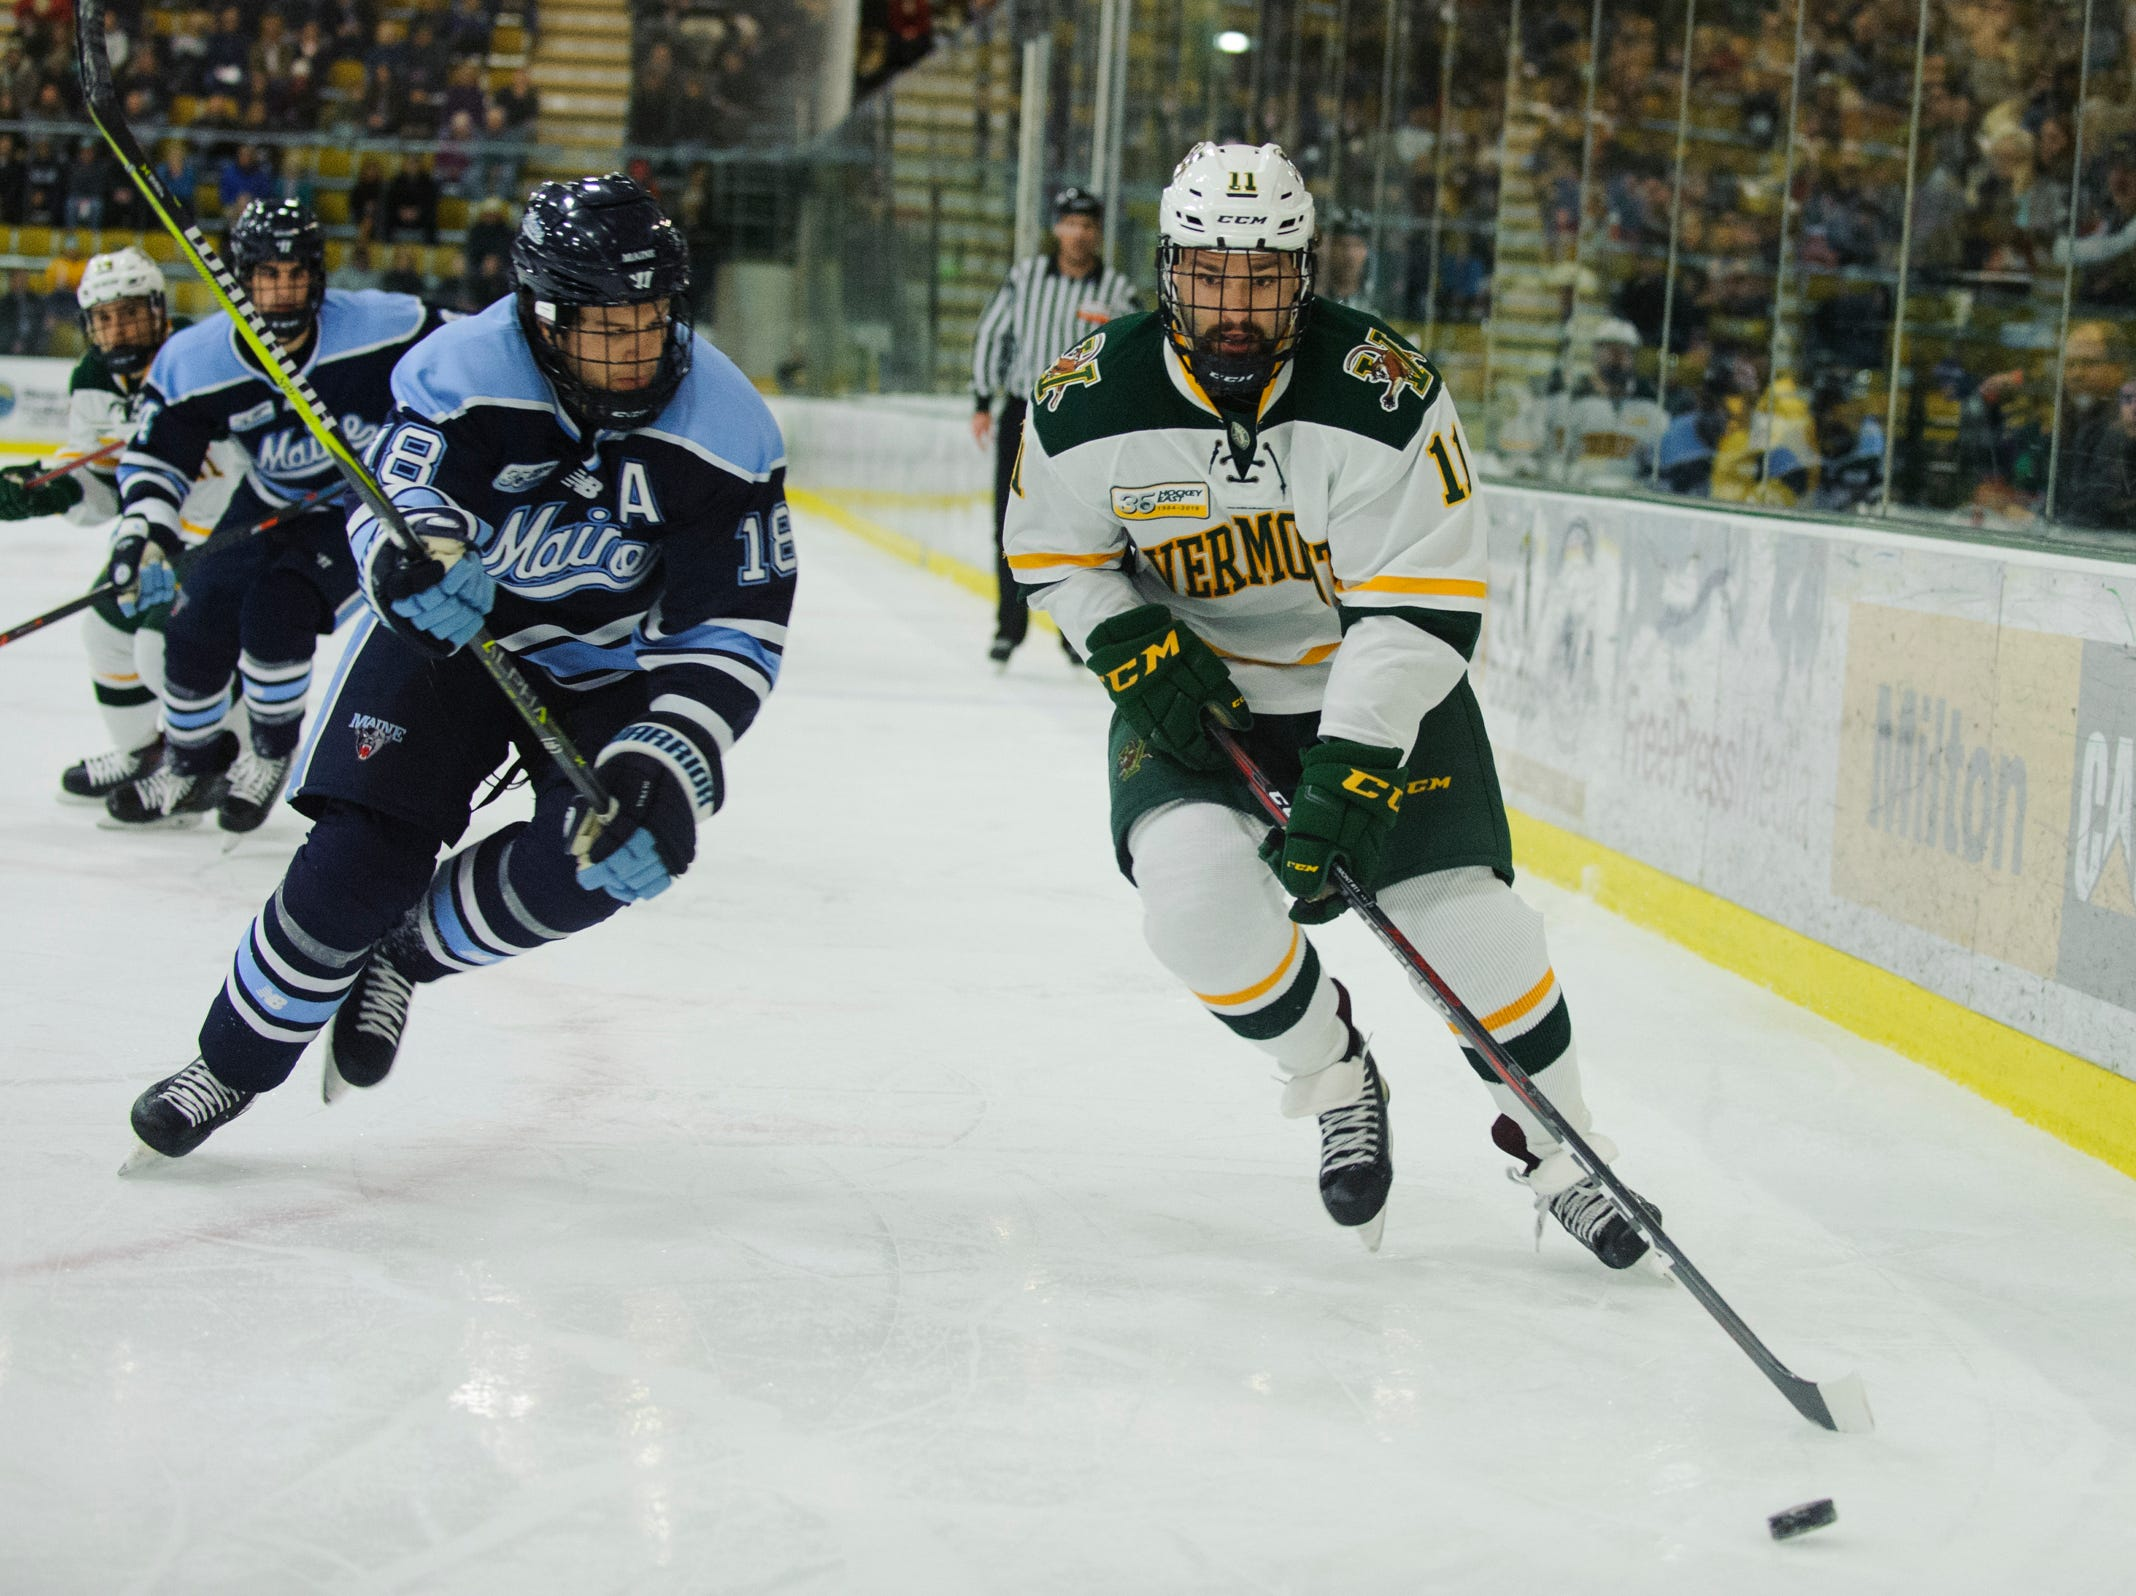 Vermont forward Conor O'Neil (11) skates past Maine's Keith Muehlbauer (18) during the men's hockey game between the Mine Black Bears and the Vermont Catamounts at Gutterson Field House on Friday night November 30, 2018 in Burlington.